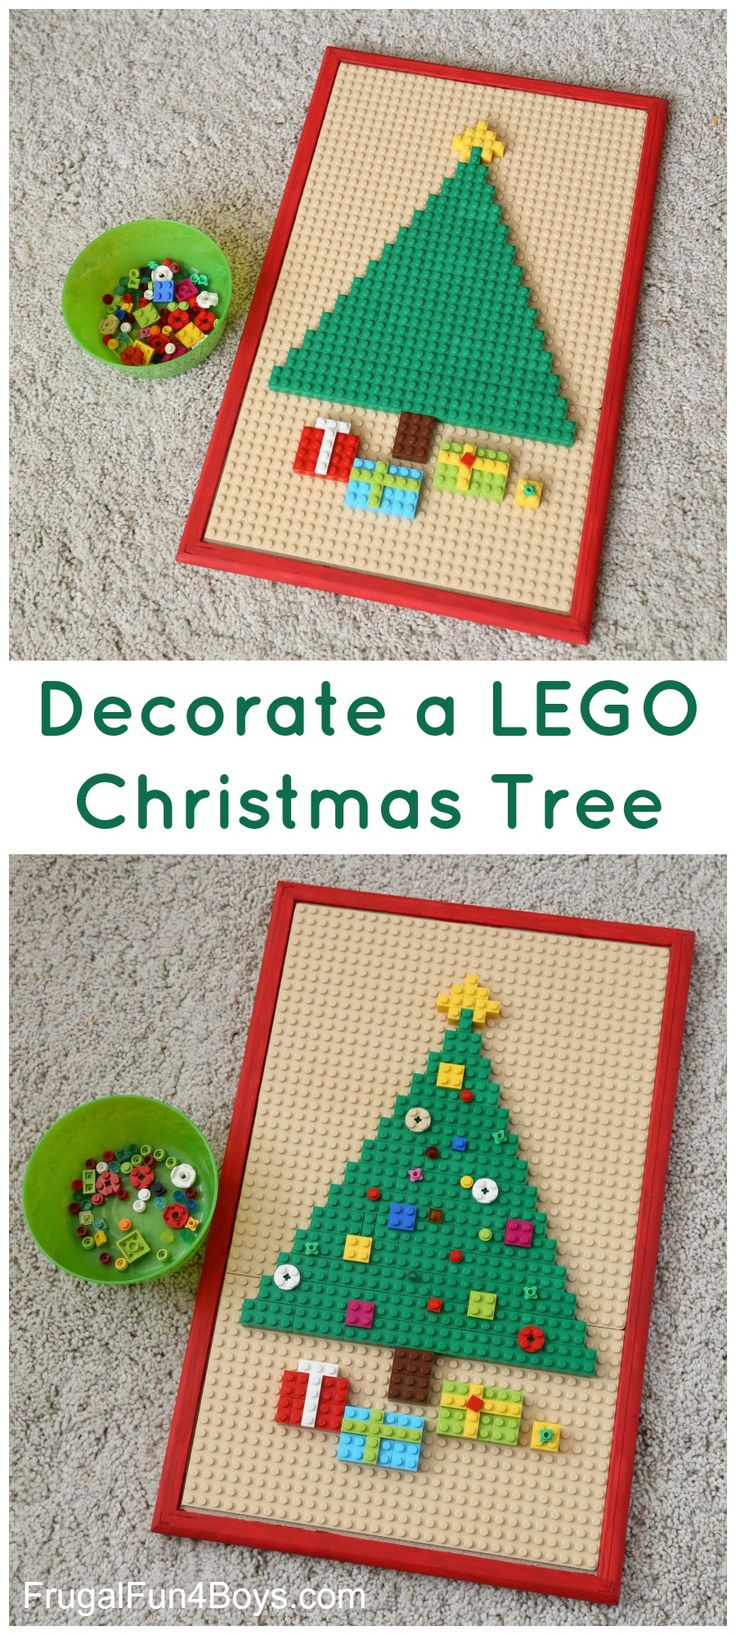 Build and decorate a LEGO Christmas tree - fun Christmas activity for kids!